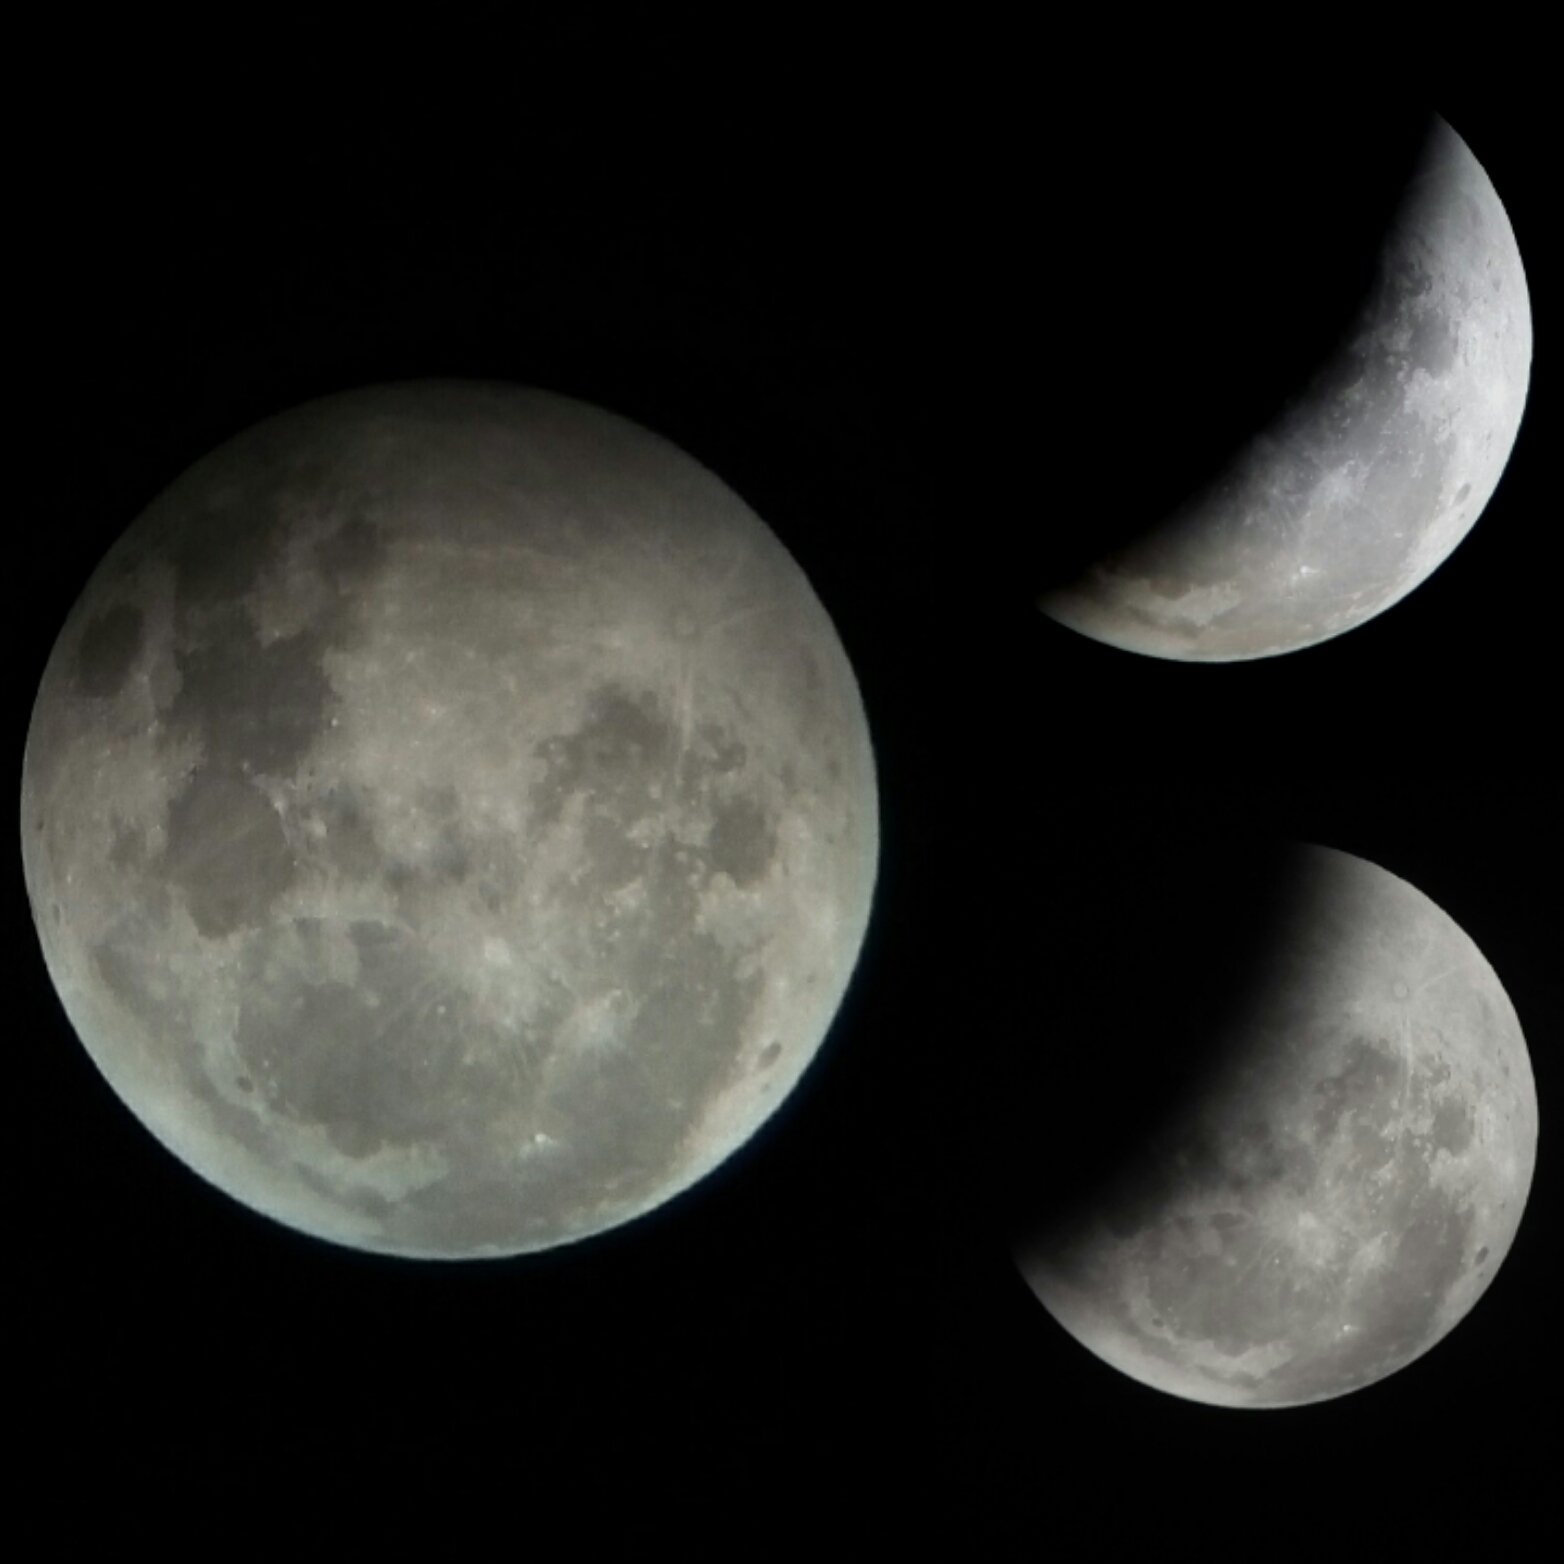 Lunar eclipse on 27 July 2018